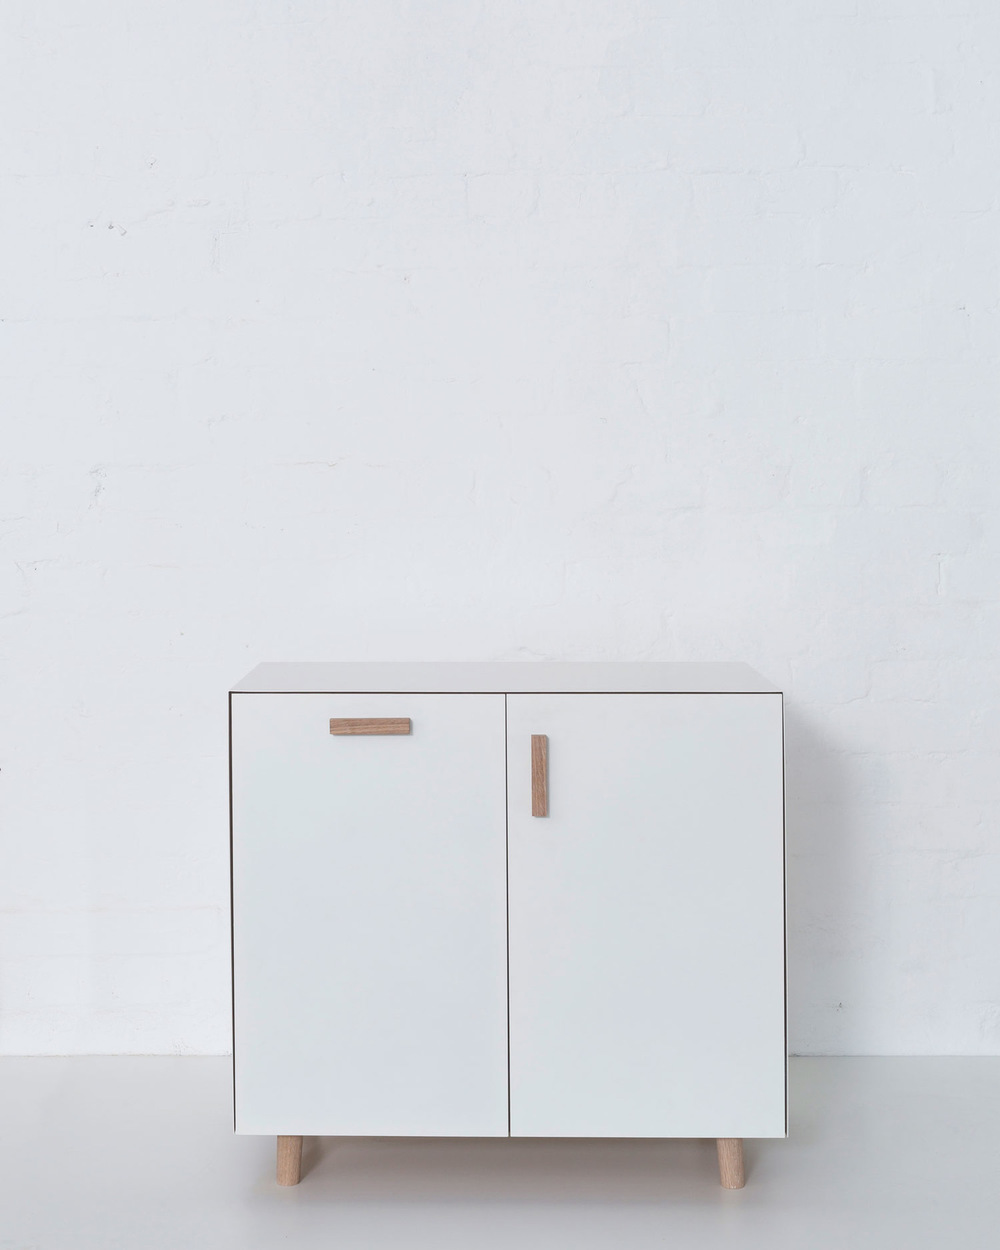 Merrett Houmøller Architects - Cabinet with integrated laundry basket